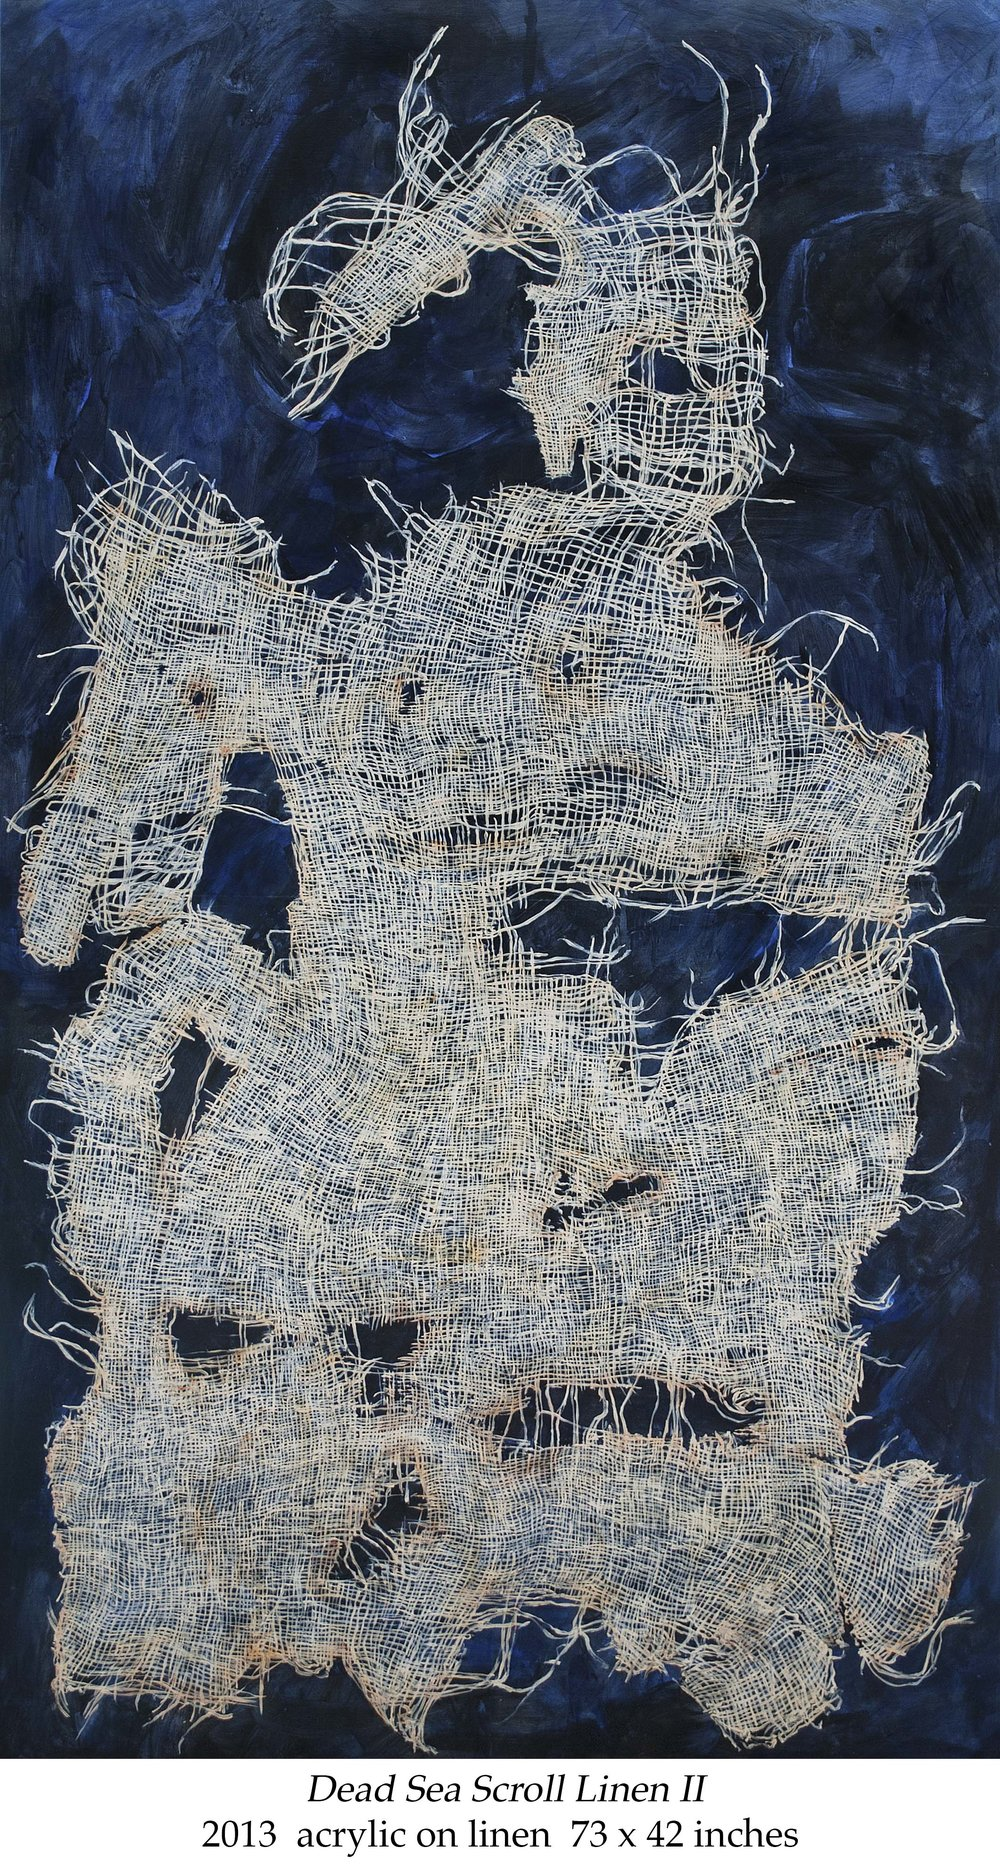 Dead Sea Scroll Linen II 2013 acrylic on linen 73 x 42 inches.jpg